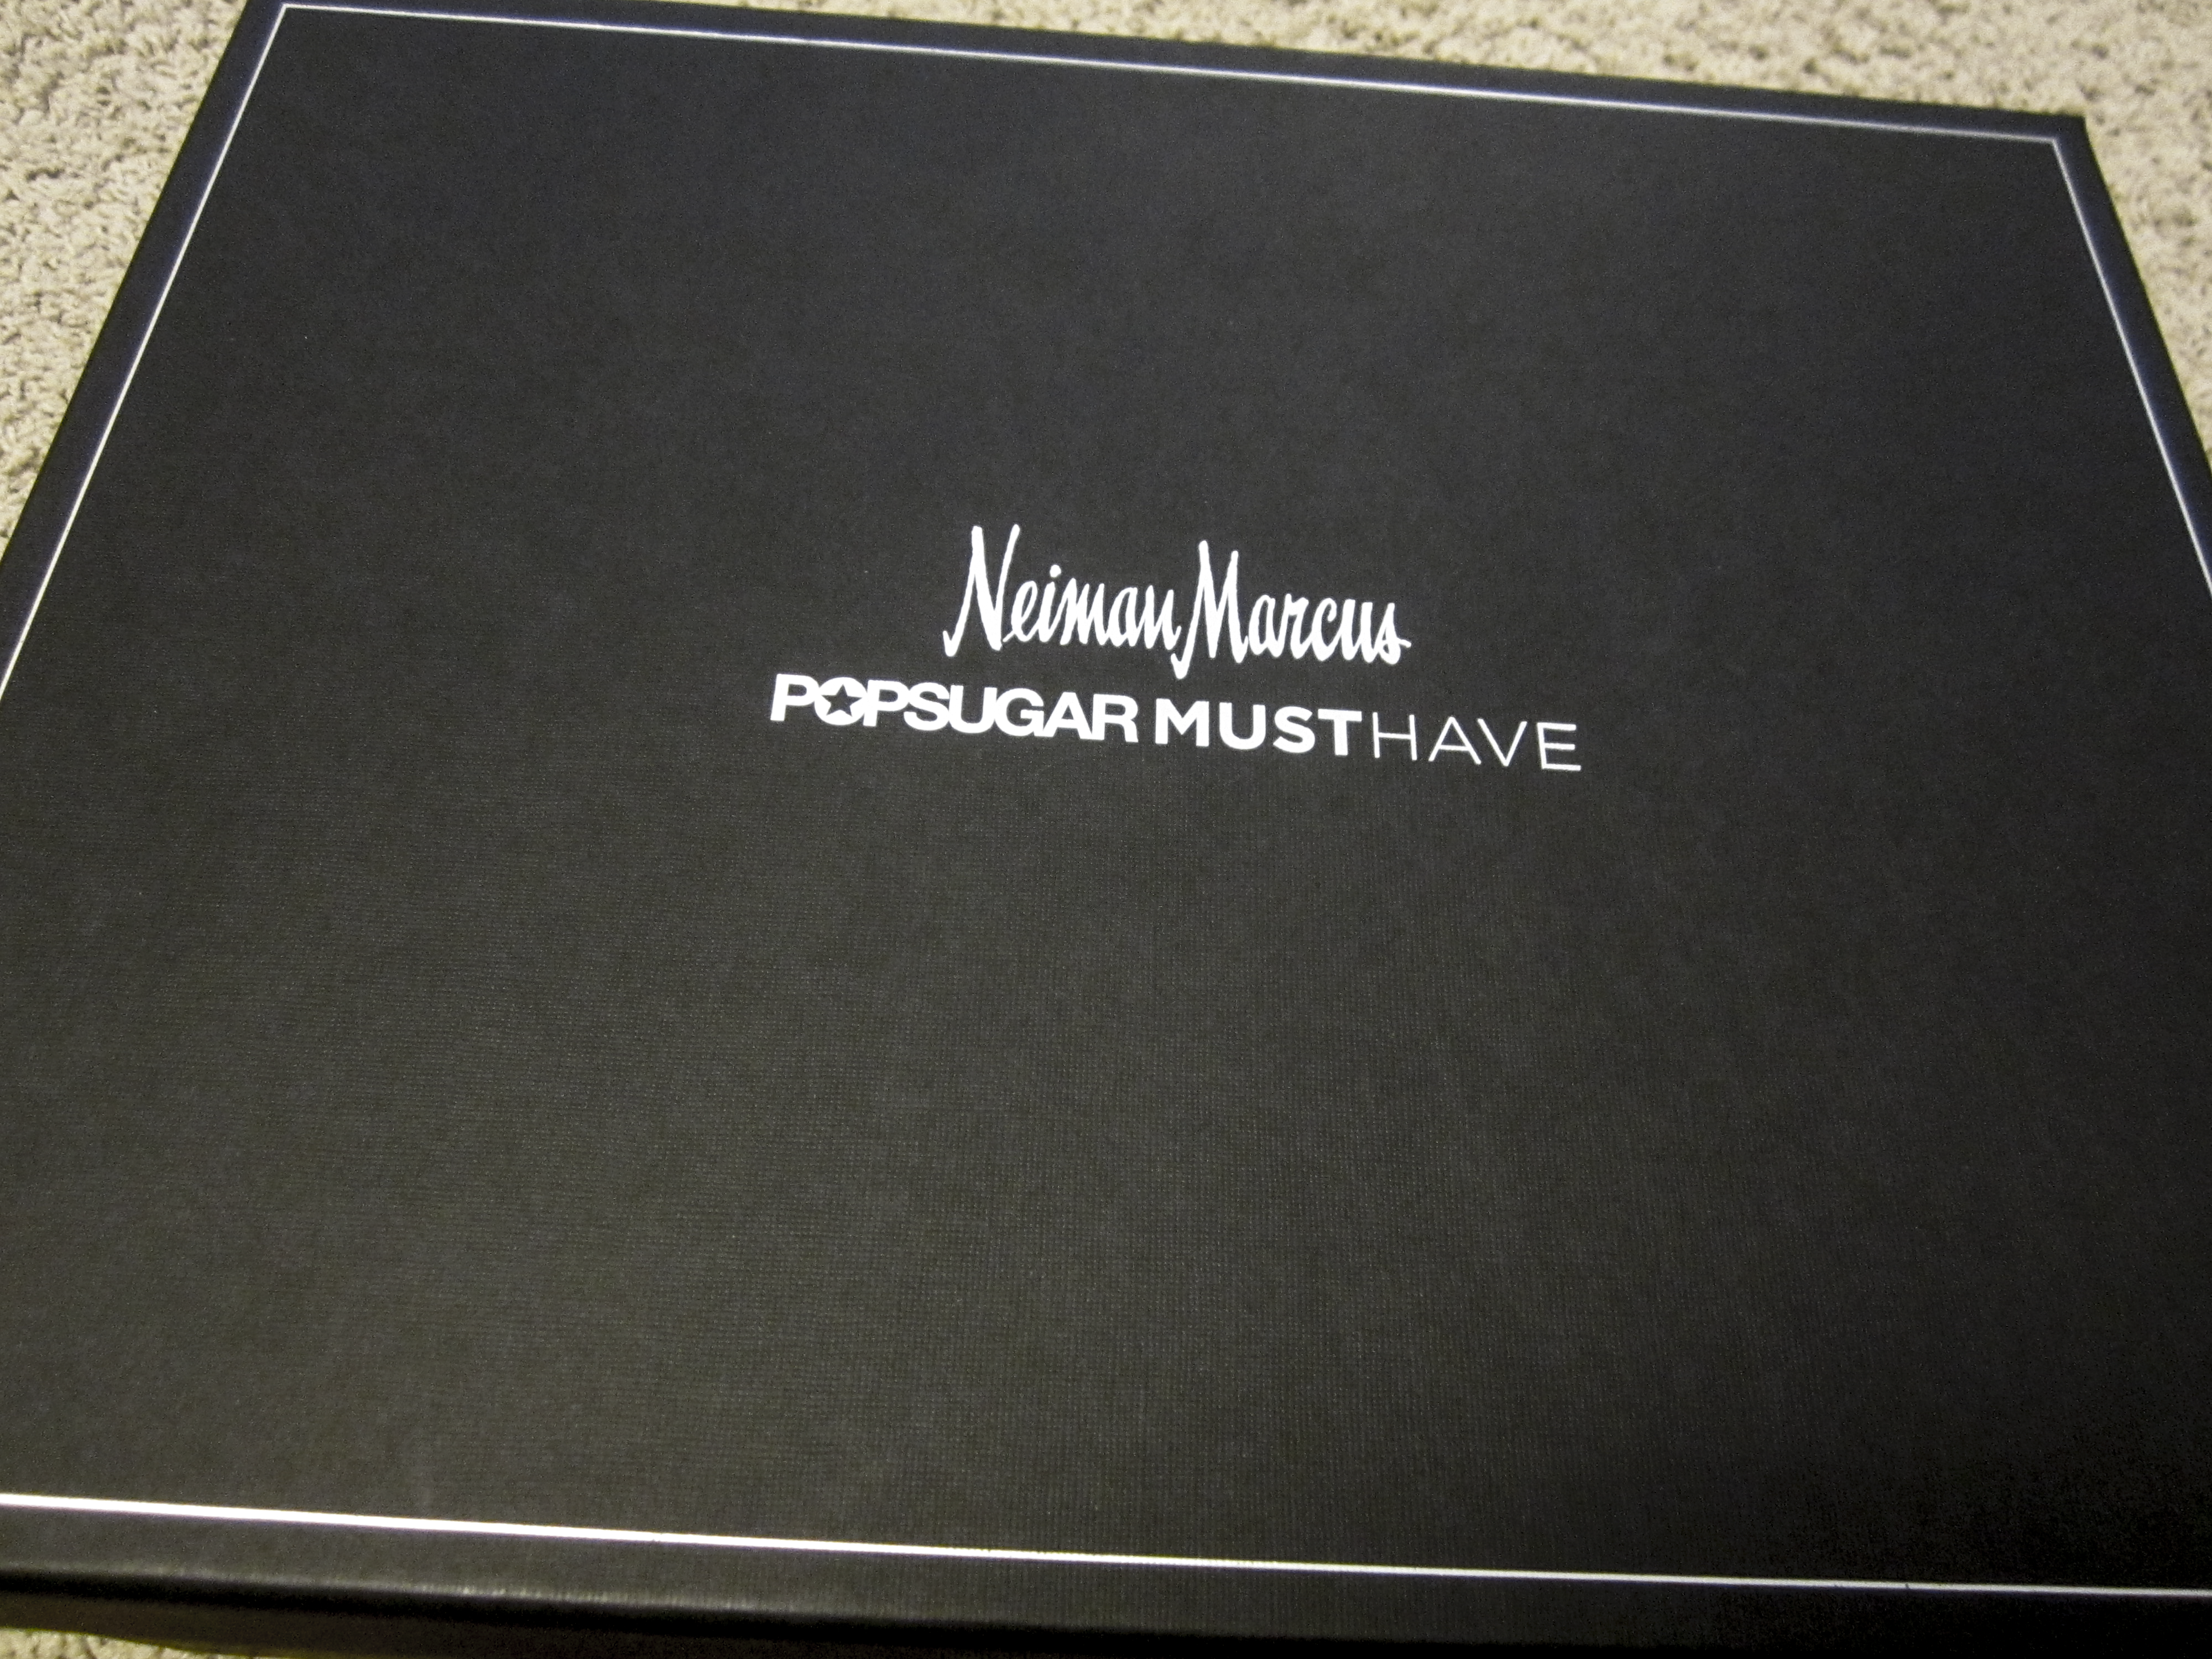 Neiman marcus credit card - Popsugar Must Have Neiman Marcus Limited Edition Box Review